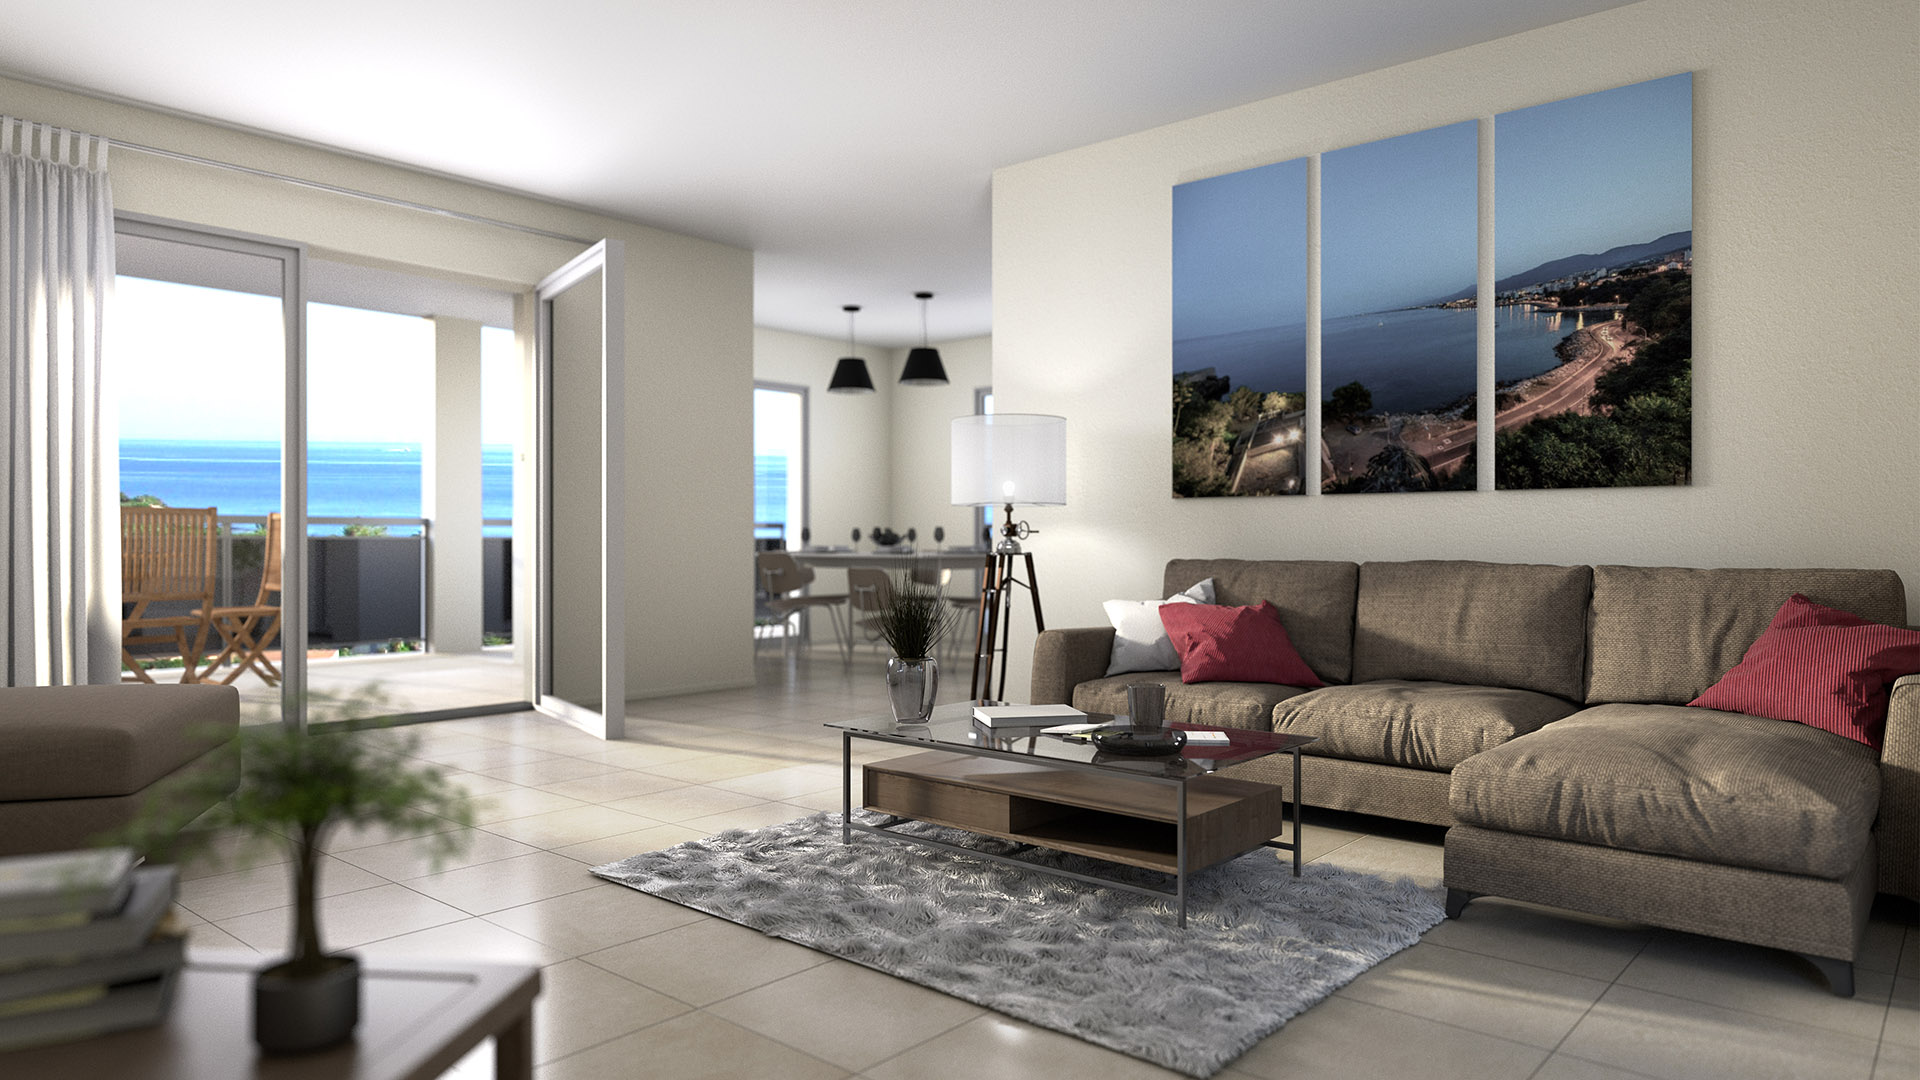 Programme neuf corse vista mare bastia 55 appartements for Residence neuf